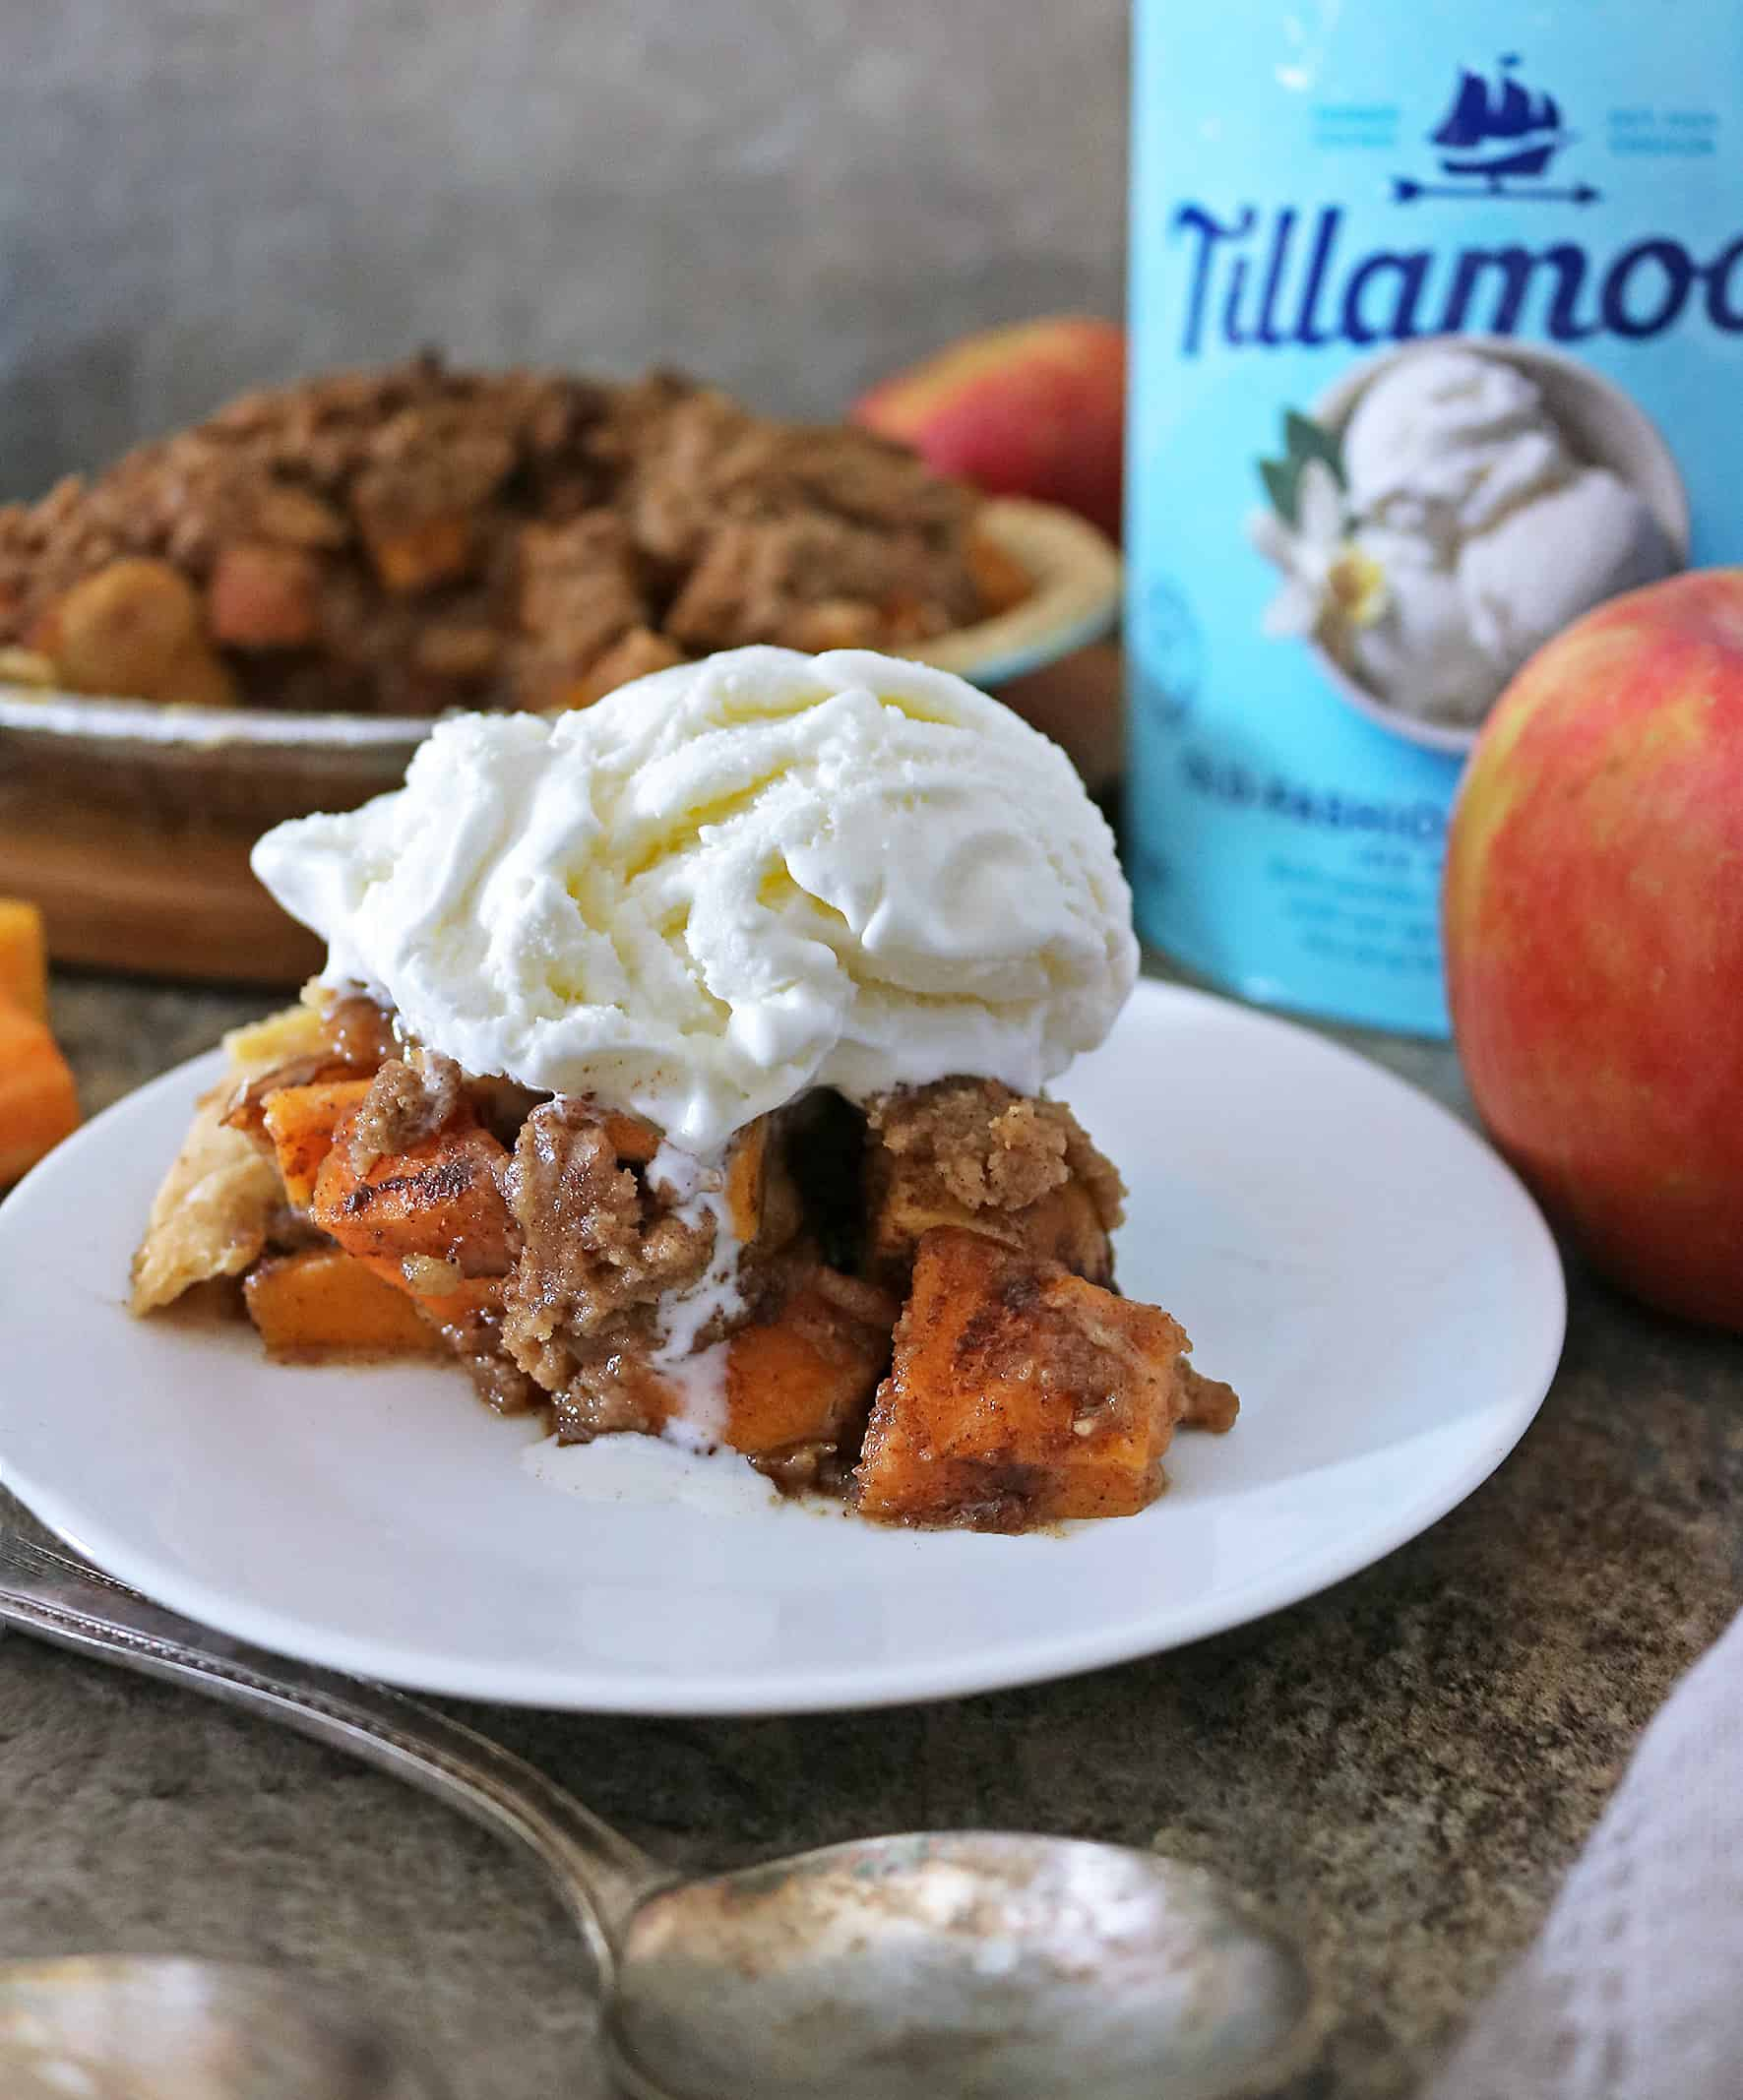 Delicious Apple Crumble Pie with butternut squash and Tillamook For Dessert